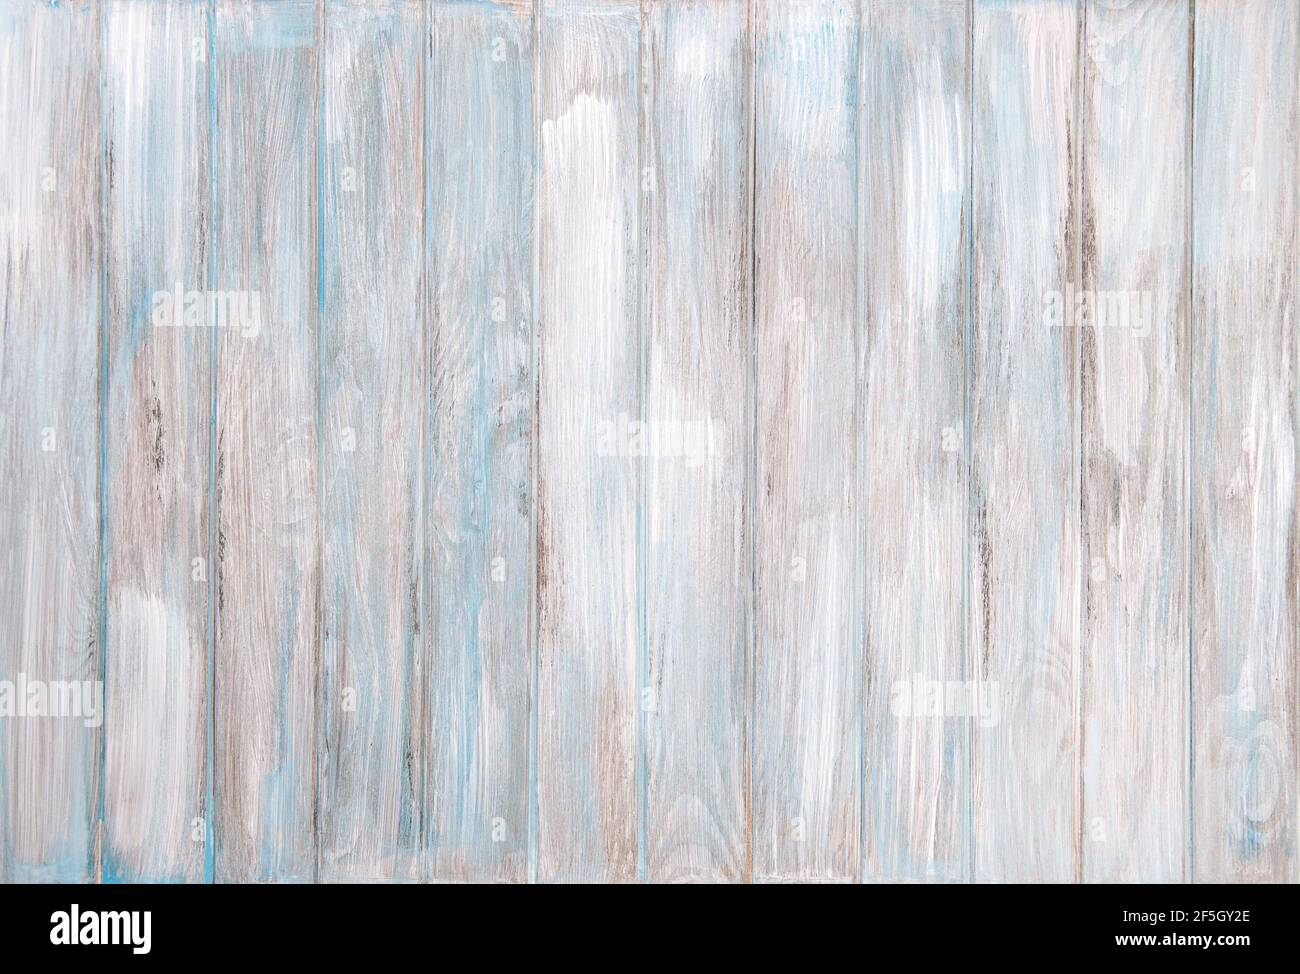 Blue colored wooden background. Natural rustic wood texture Stock Photo